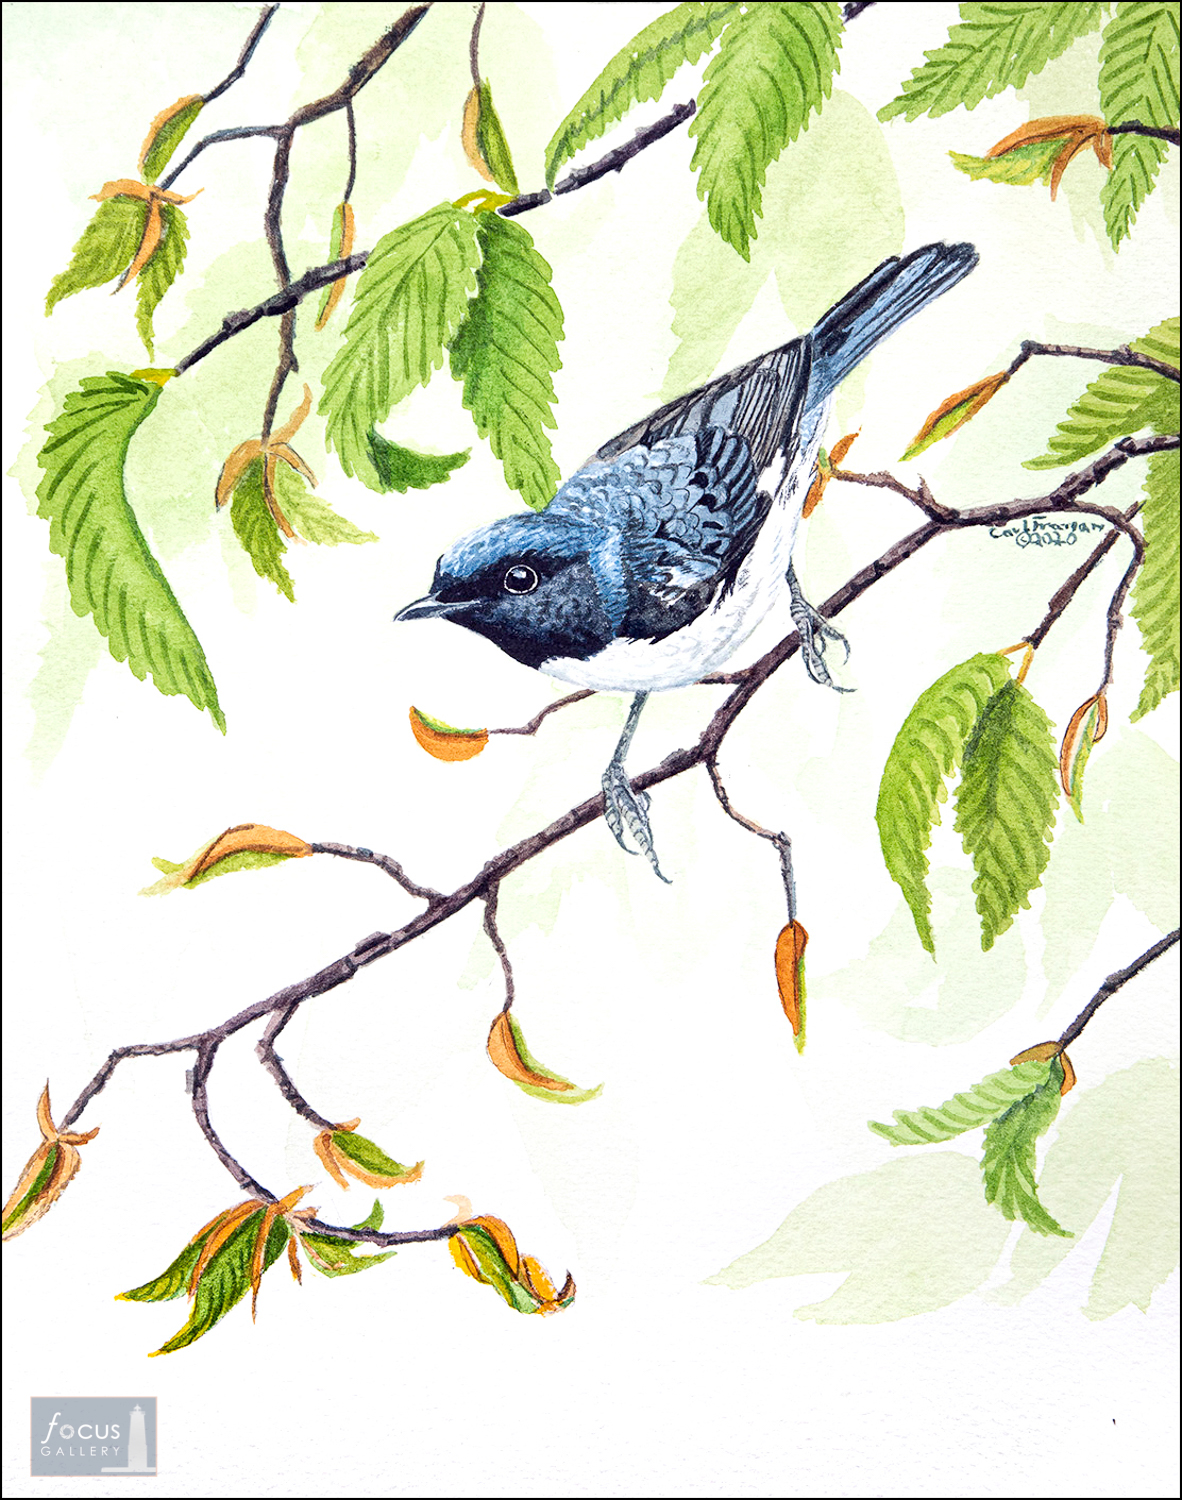 Original watercolor painting of a Black-throated Blue warbler songbird.